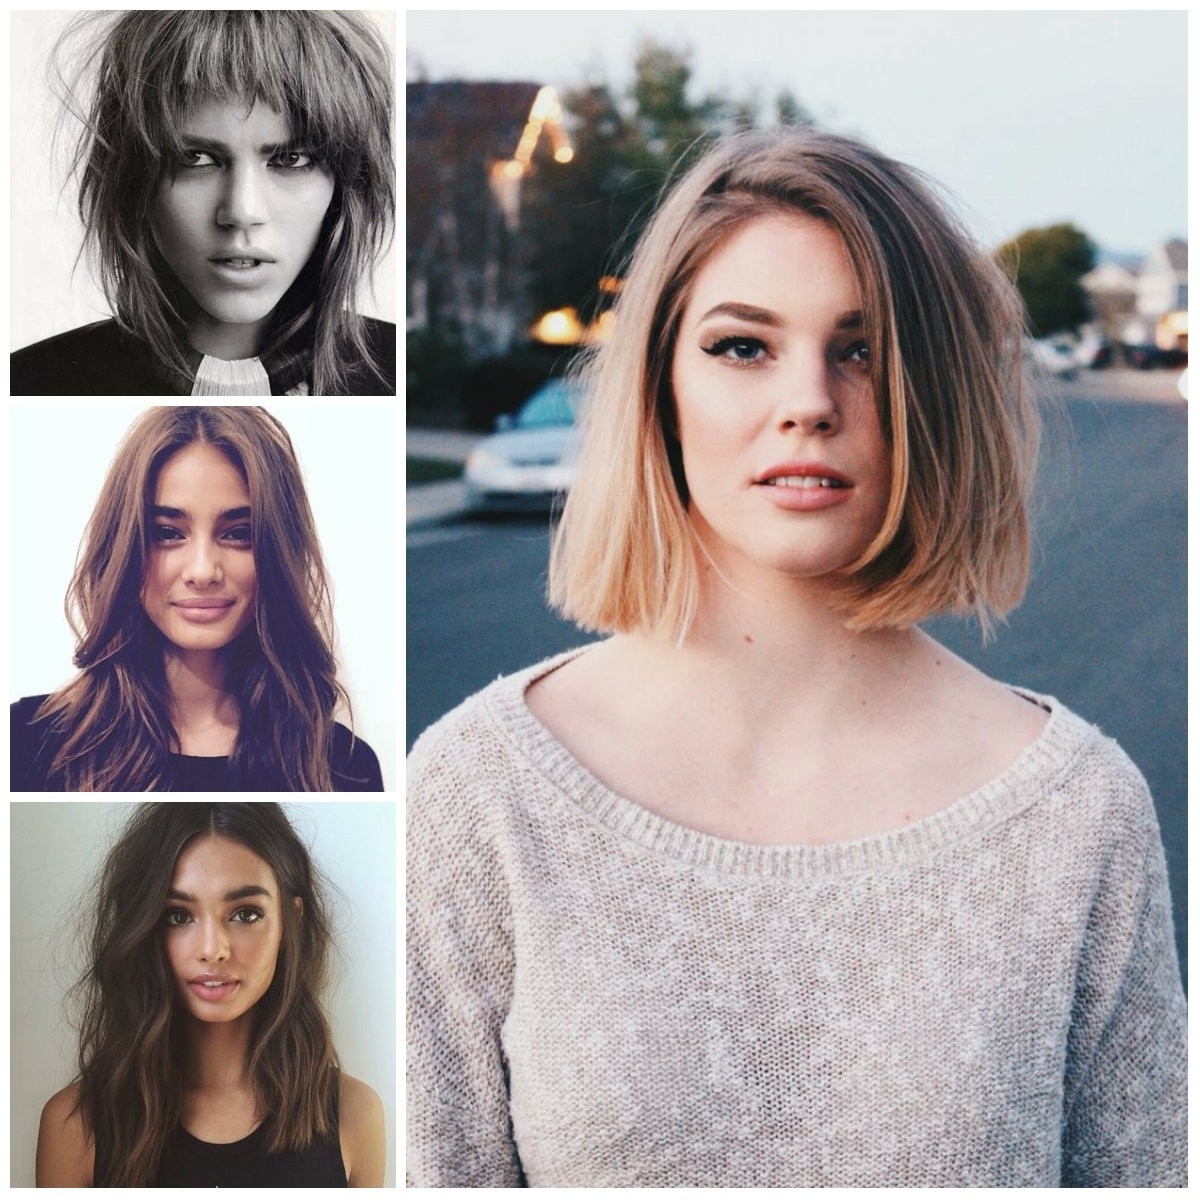 Low Maintenance Haircut For Square Face Archives - Hairstyles And with regard to Low Maintenance Haircut For Square Face